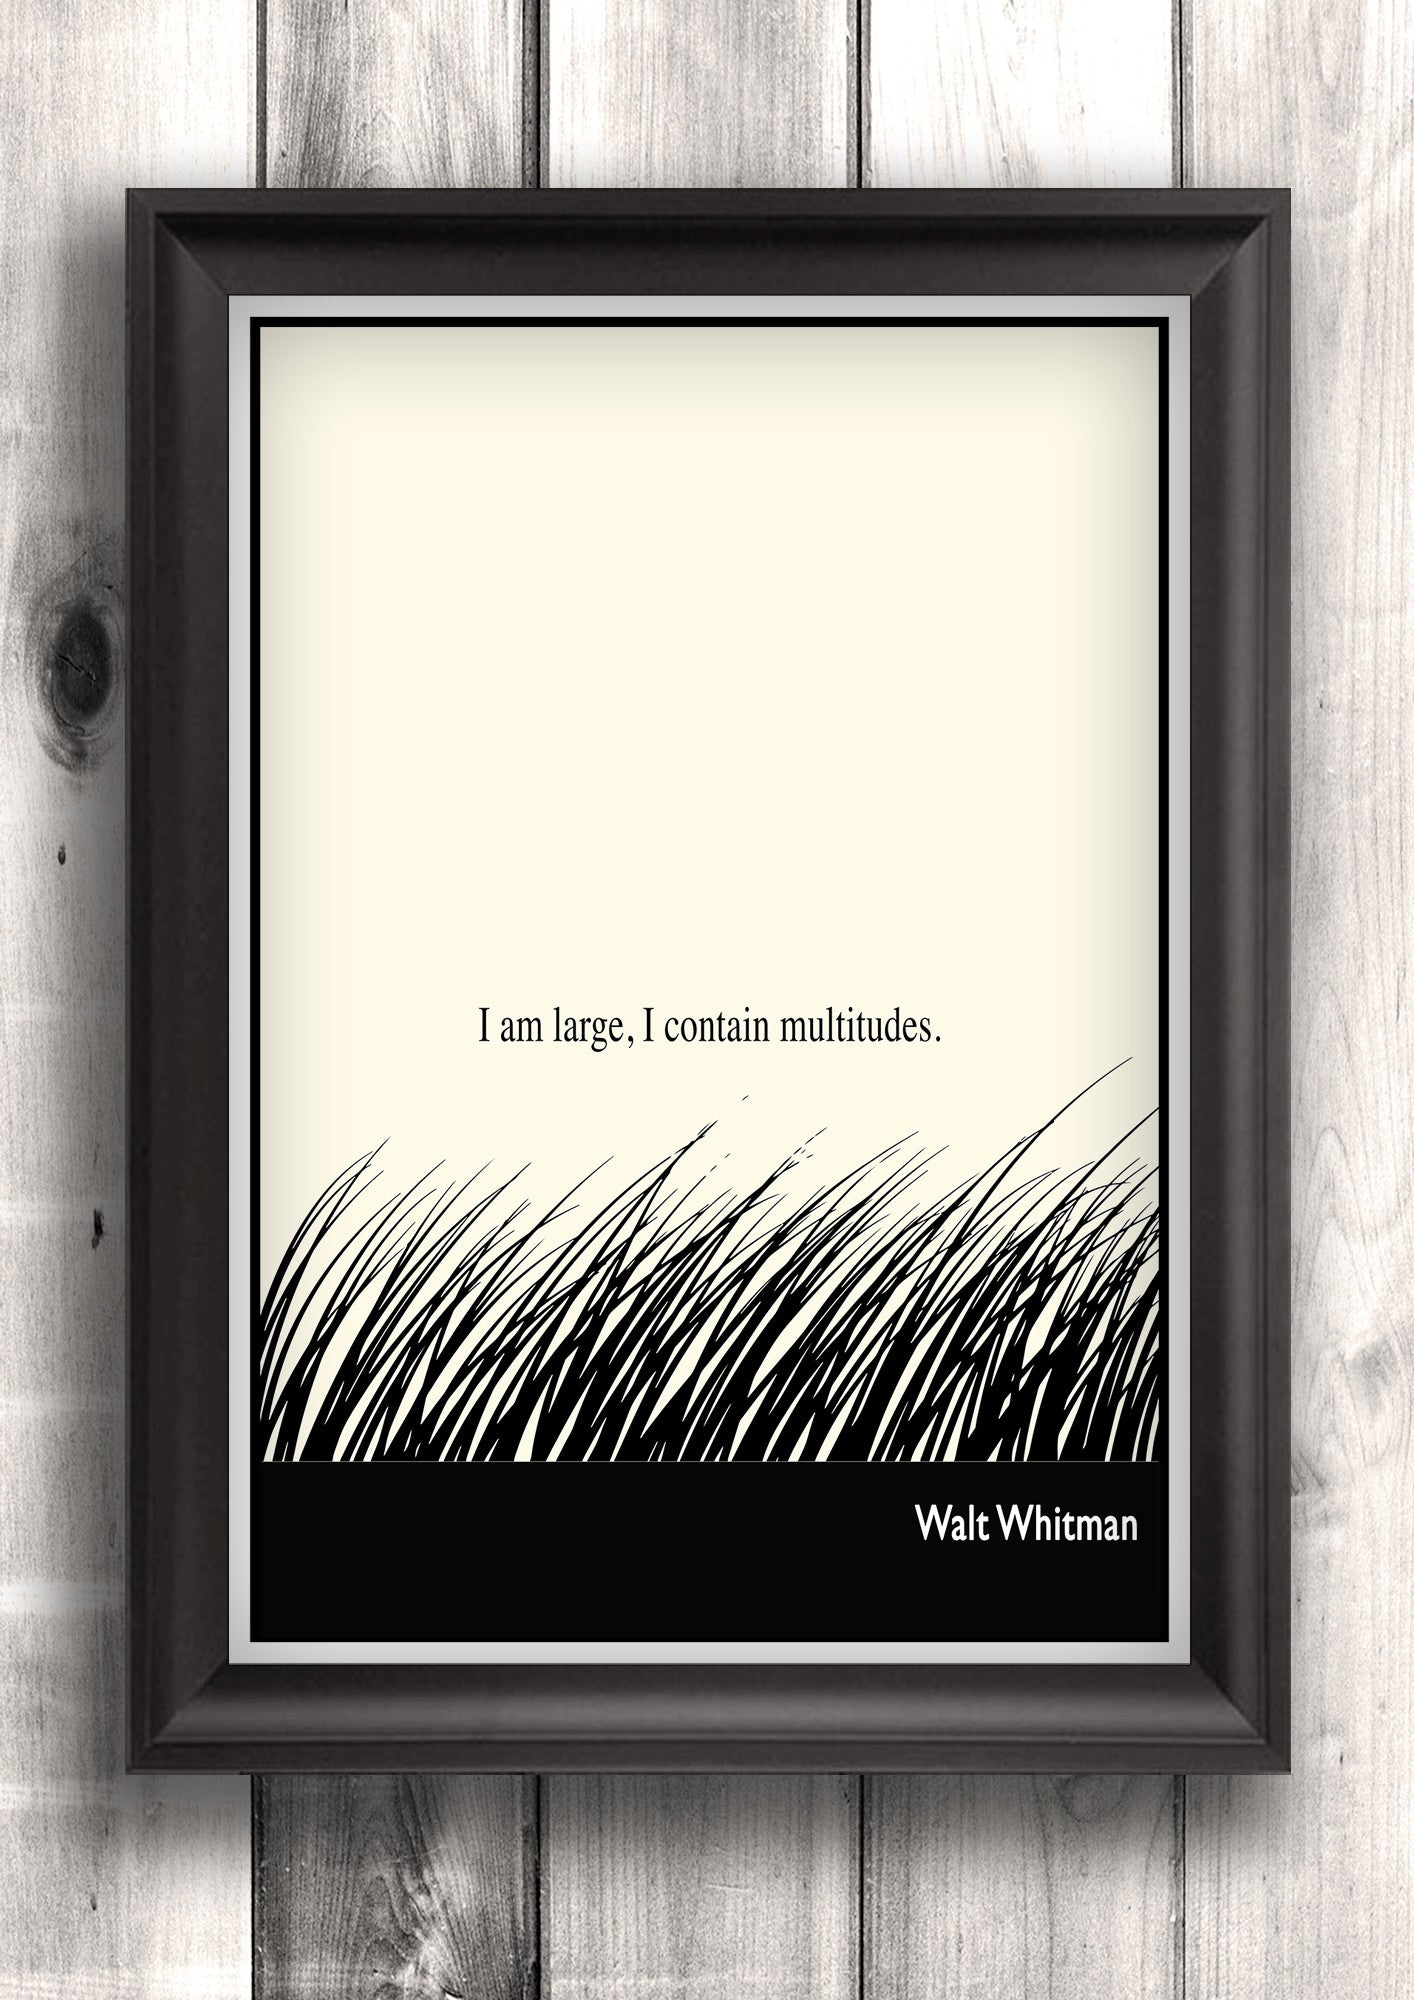 Literary Art - Walt Whitman Quote, Art Poster, Minimalist Black and White - Fine art letterpress poster